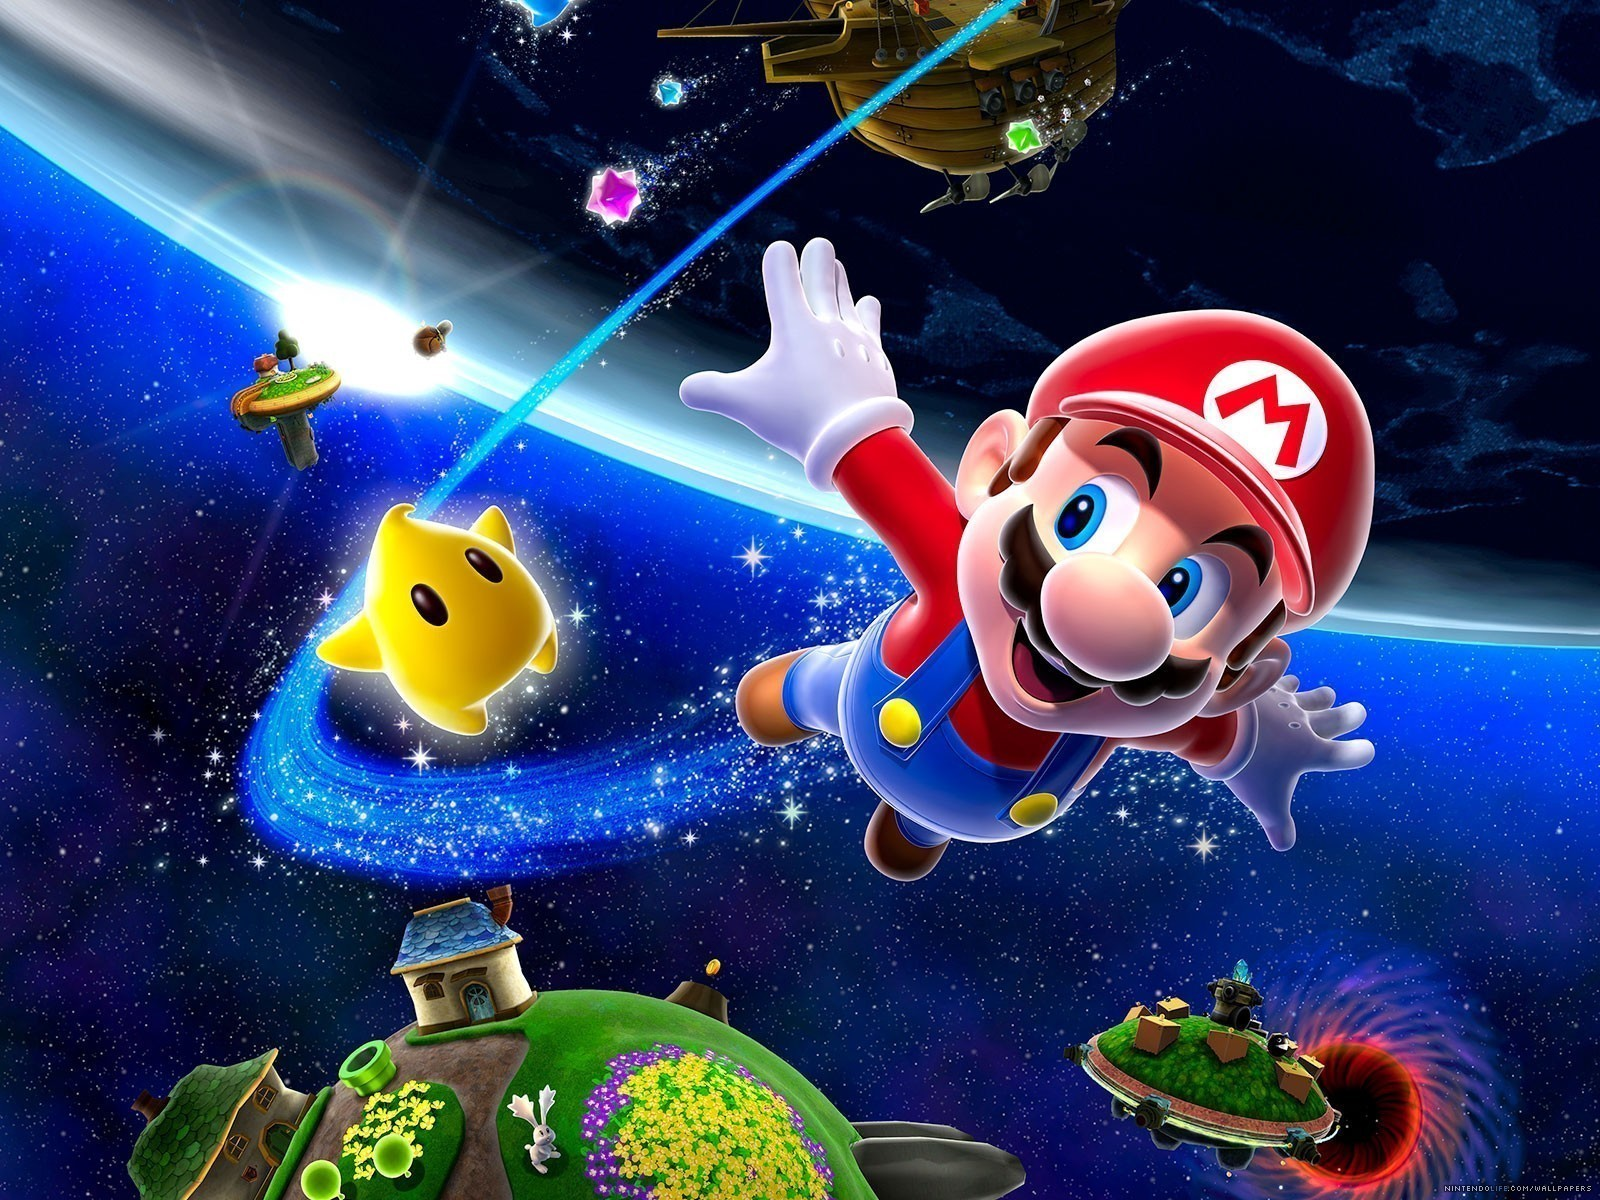 Mario and luigi images super mario galaxy hd wallpaper and mario and luigi images super mario galaxy hd wallpaper and background photos altavistaventures Gallery